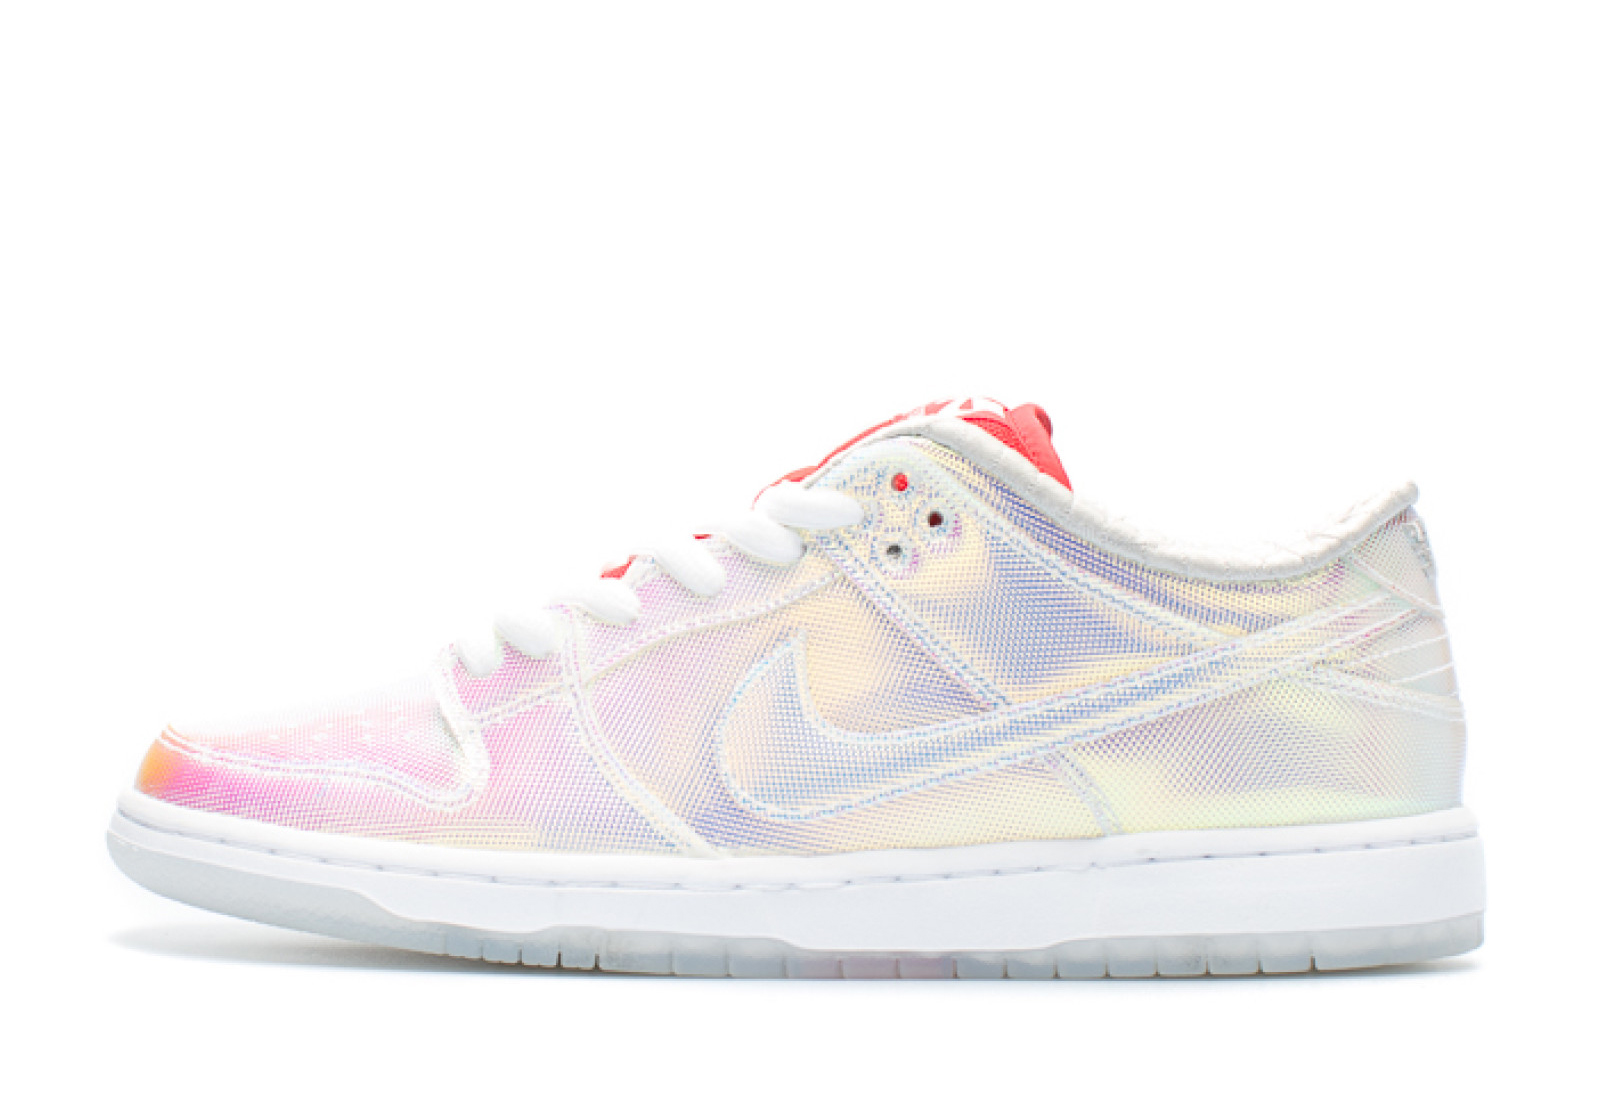 Concepts x Dunk Low Pro SB 'Holy Grail' 504750 140